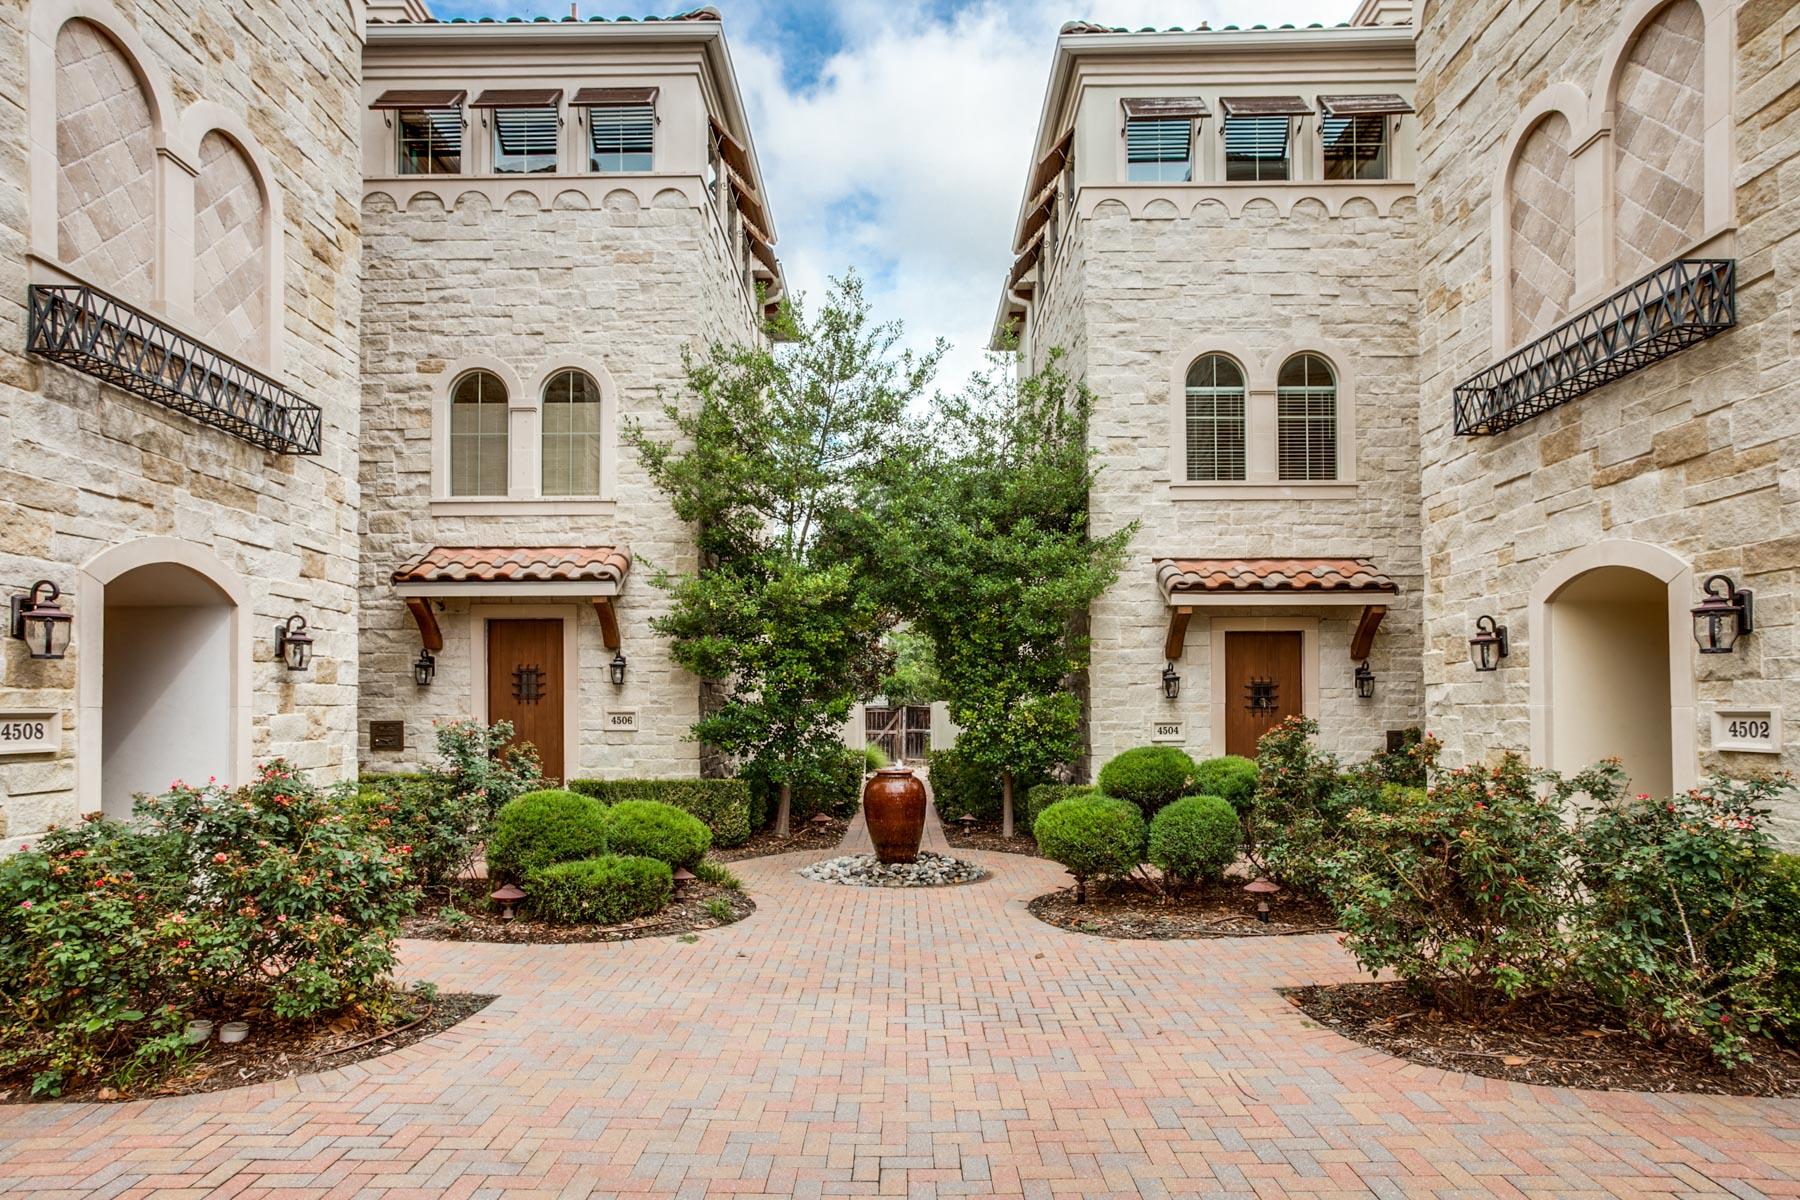 Single Family Home for Sale at Enduring Style 4502 Normandy Ave Dallas, Texas, 75205 United States